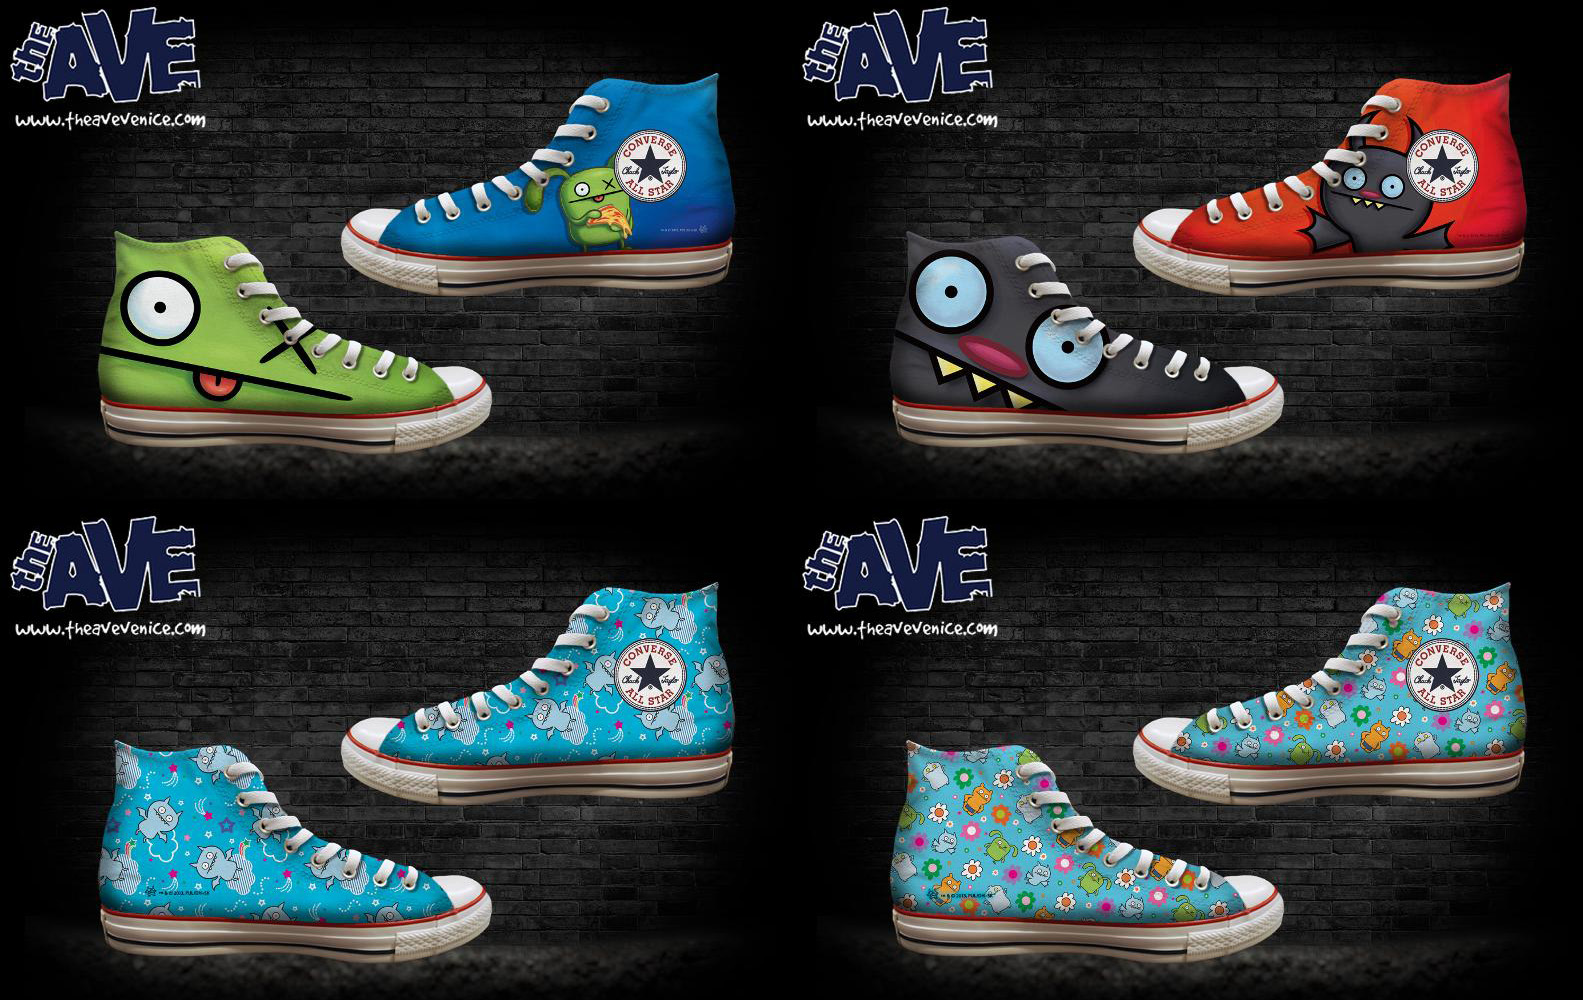 Uglydoll Shoes!